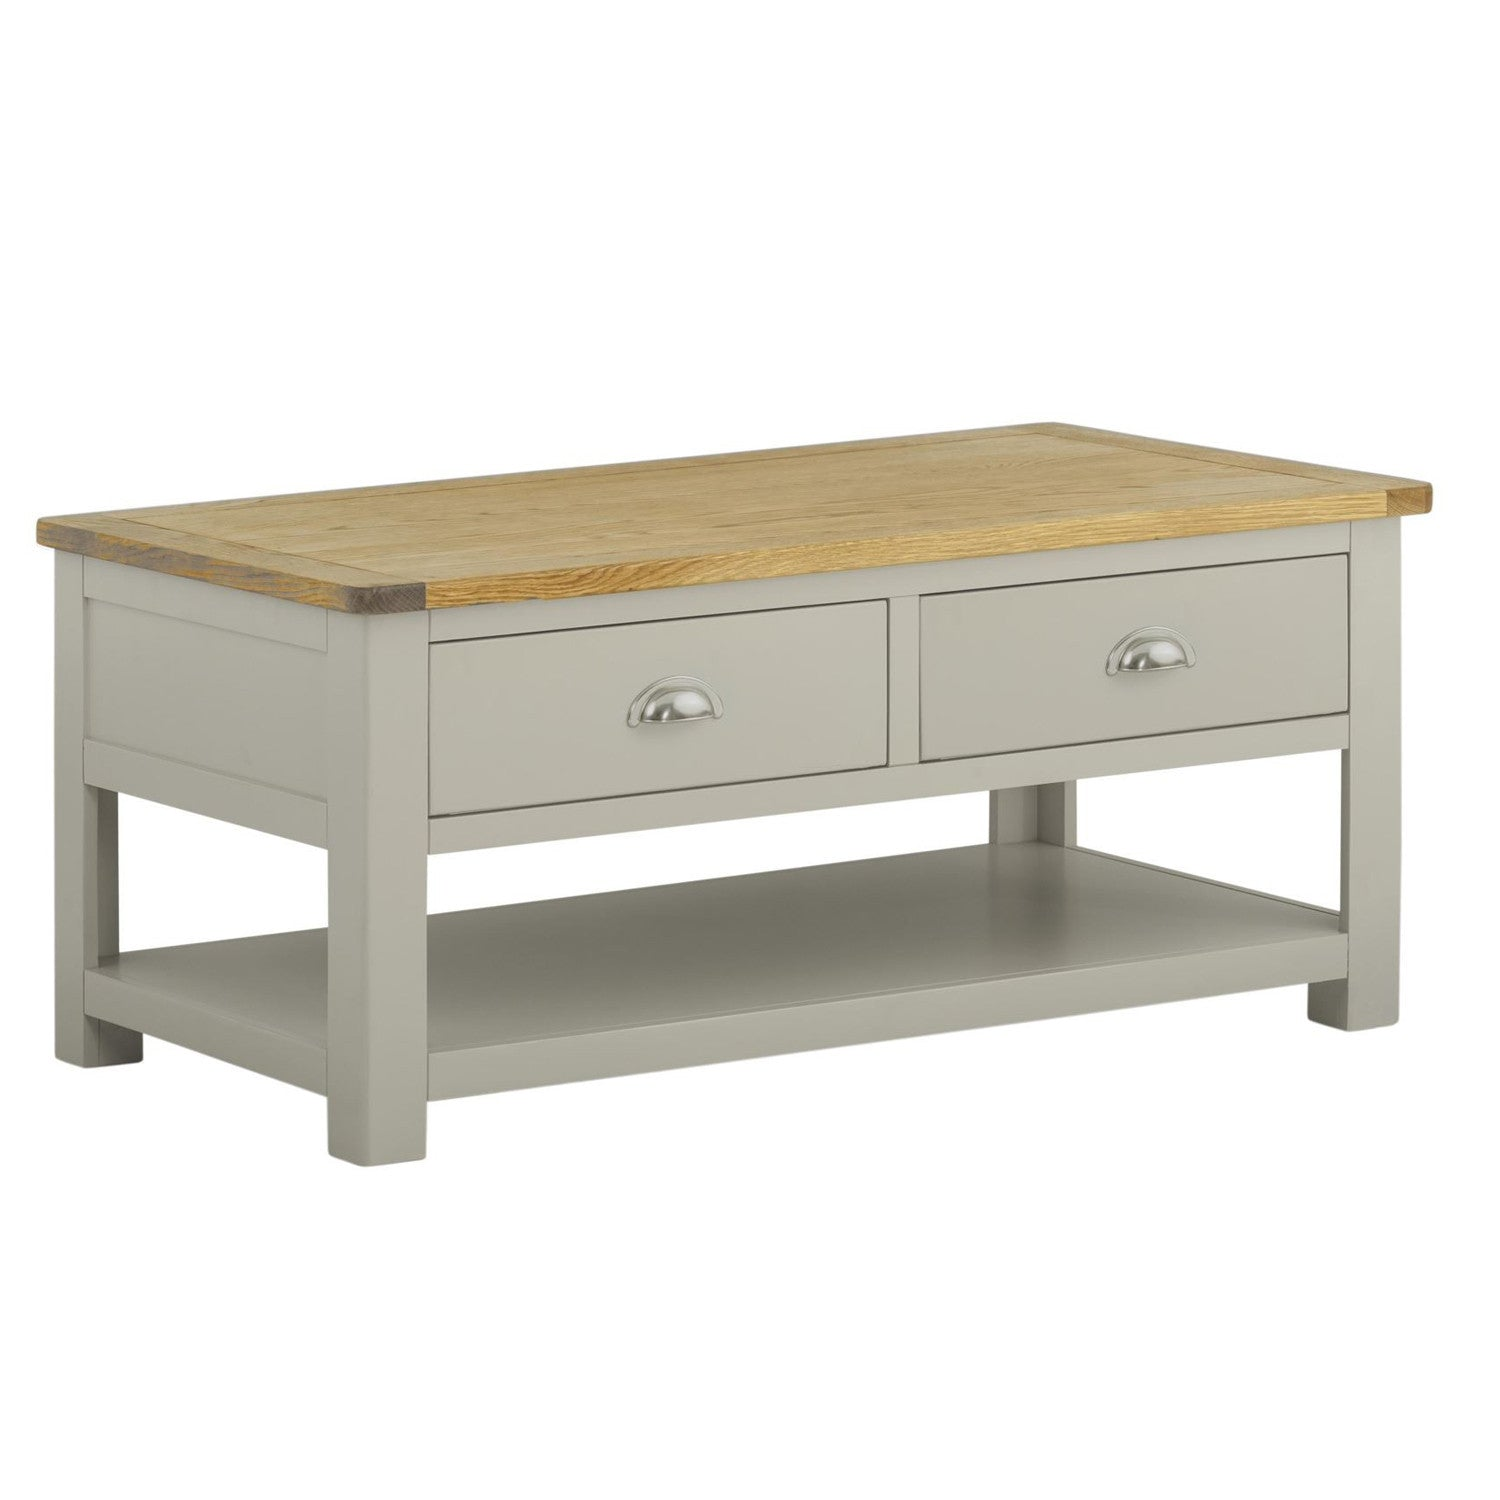 Portland Oak and Painted 2 Drawer Coffee Table